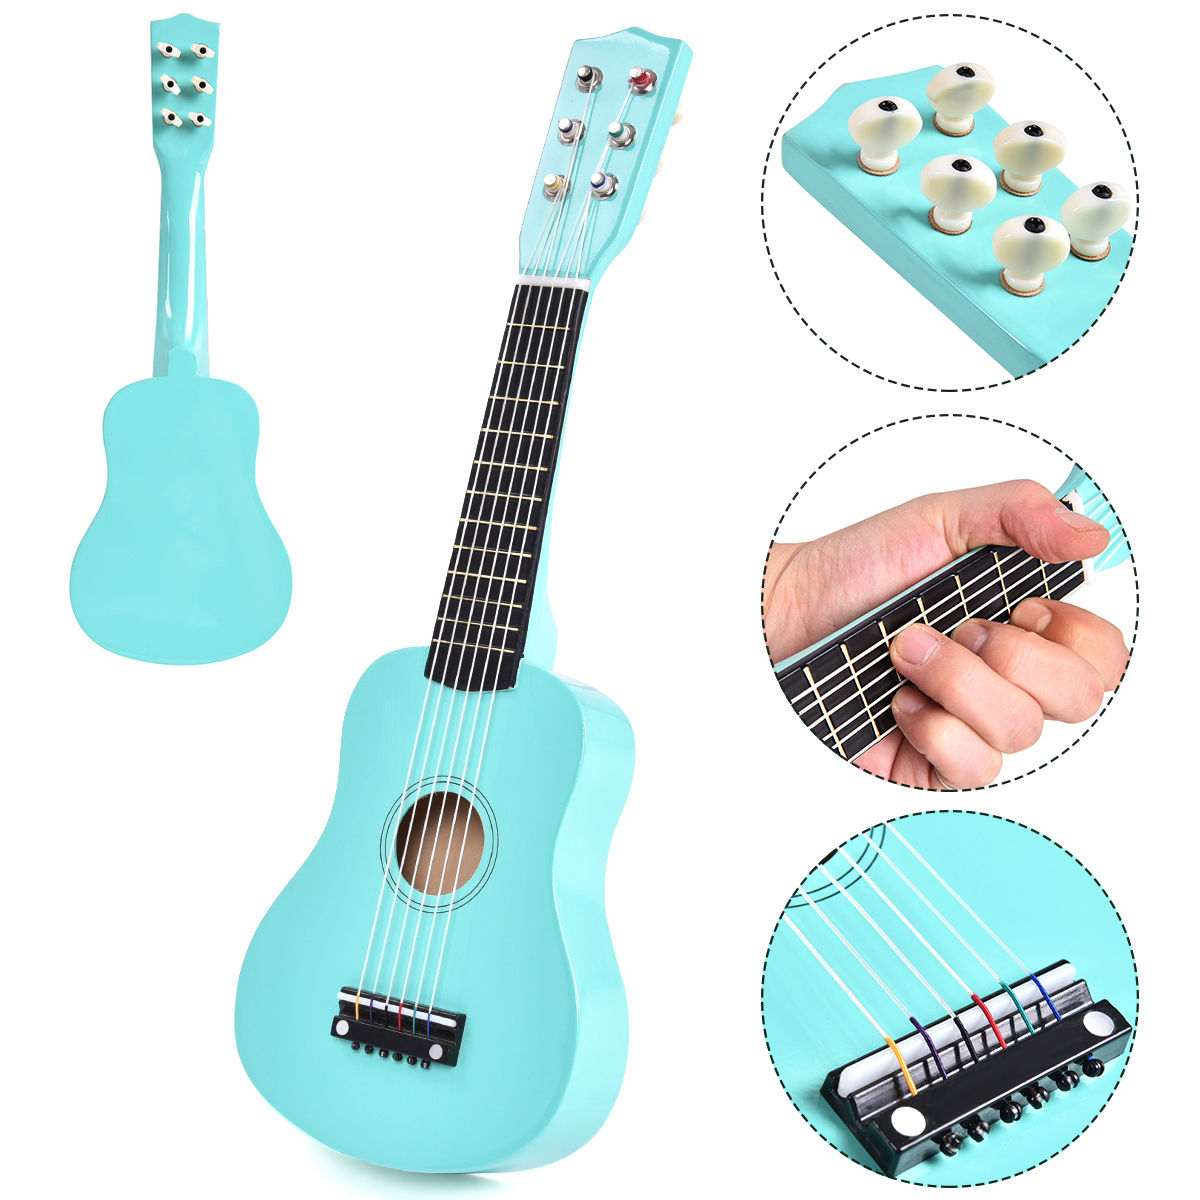 Costway 21'' Beginners Kids Acoustic Guitar 6 String with Pick Children Kids Musical Gift by Costway